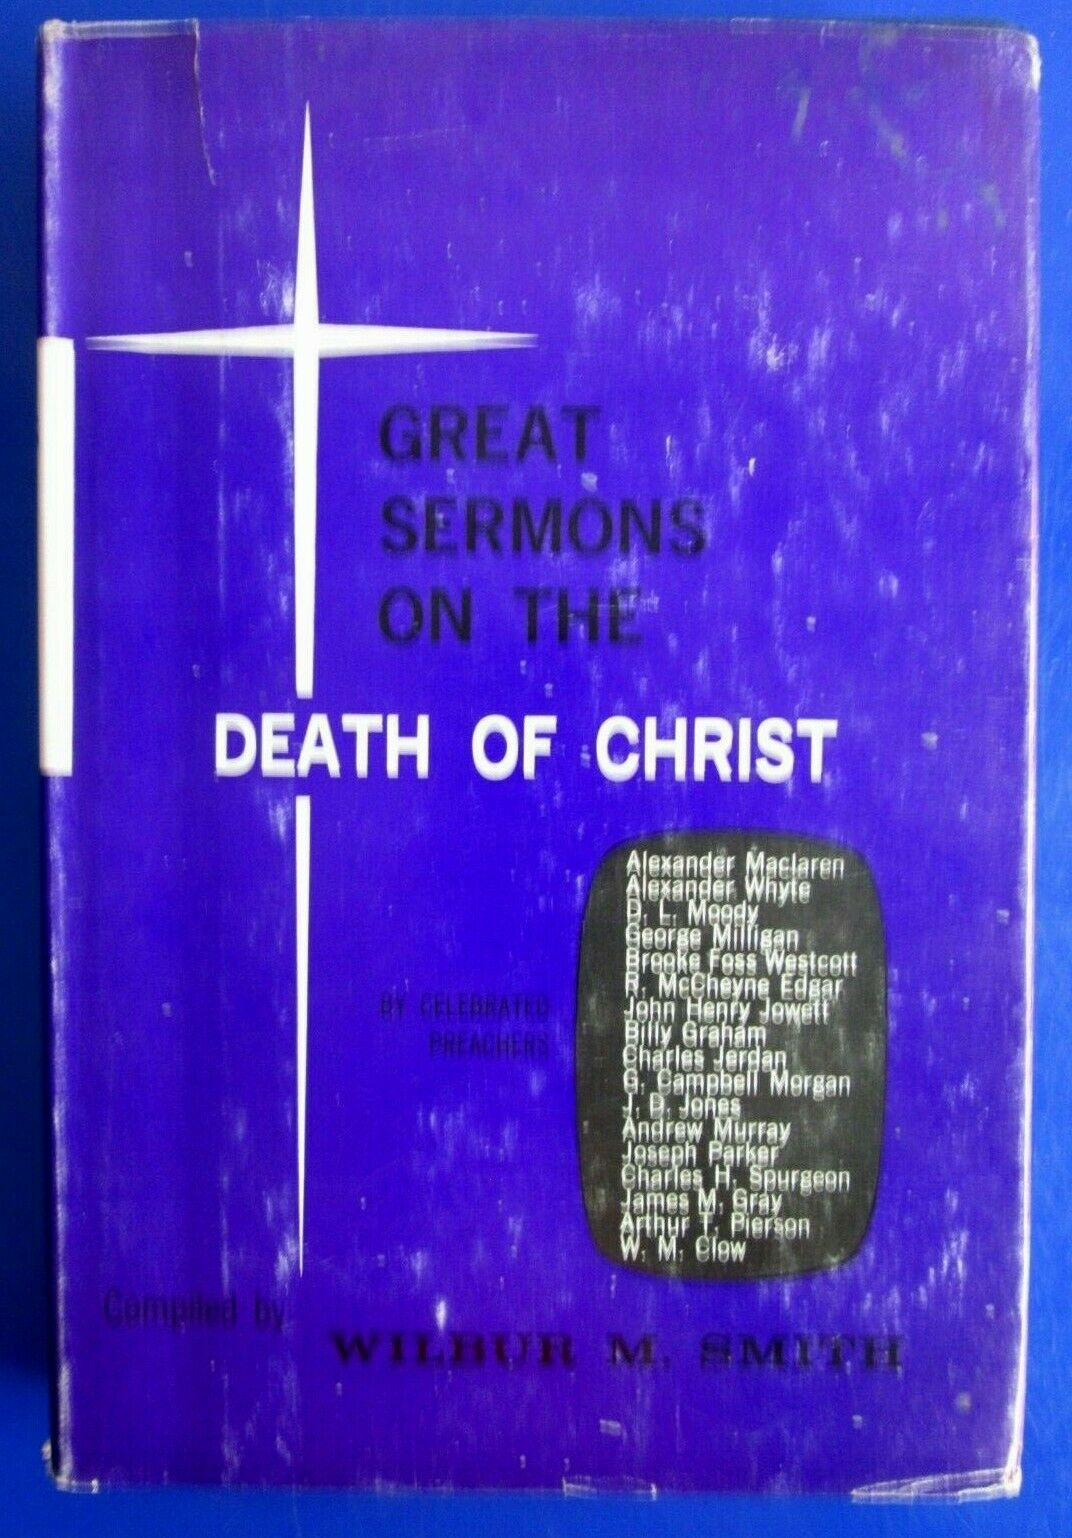 1965 Great Sermons On The Death Of Christ Complied By Wilbur M. Smith HC/DJ Book - $5.99